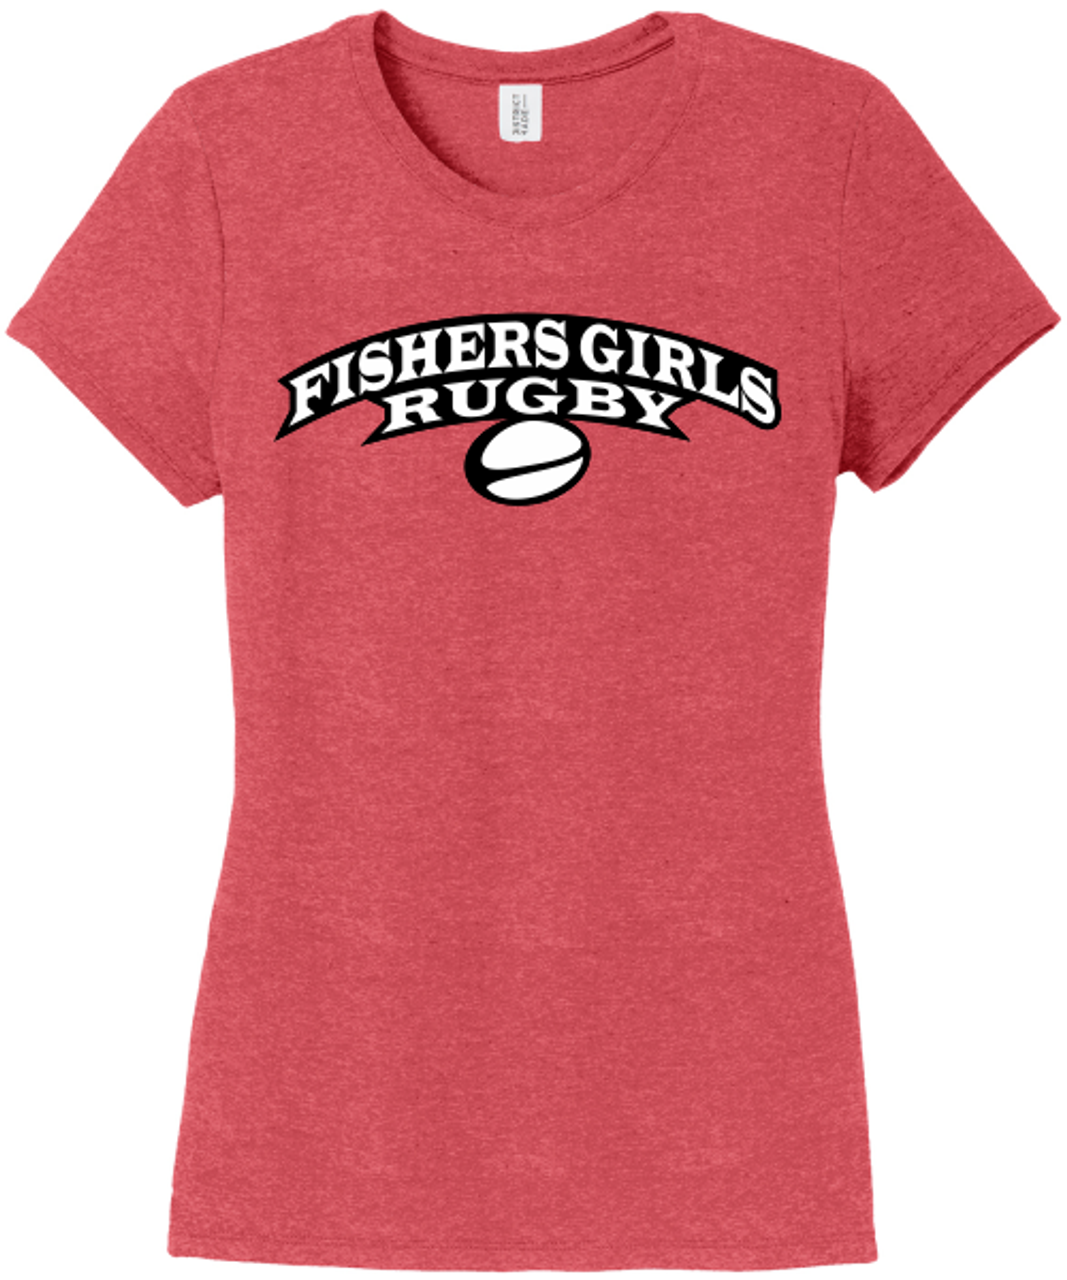 Fishers Girls Triblend Tee, Red